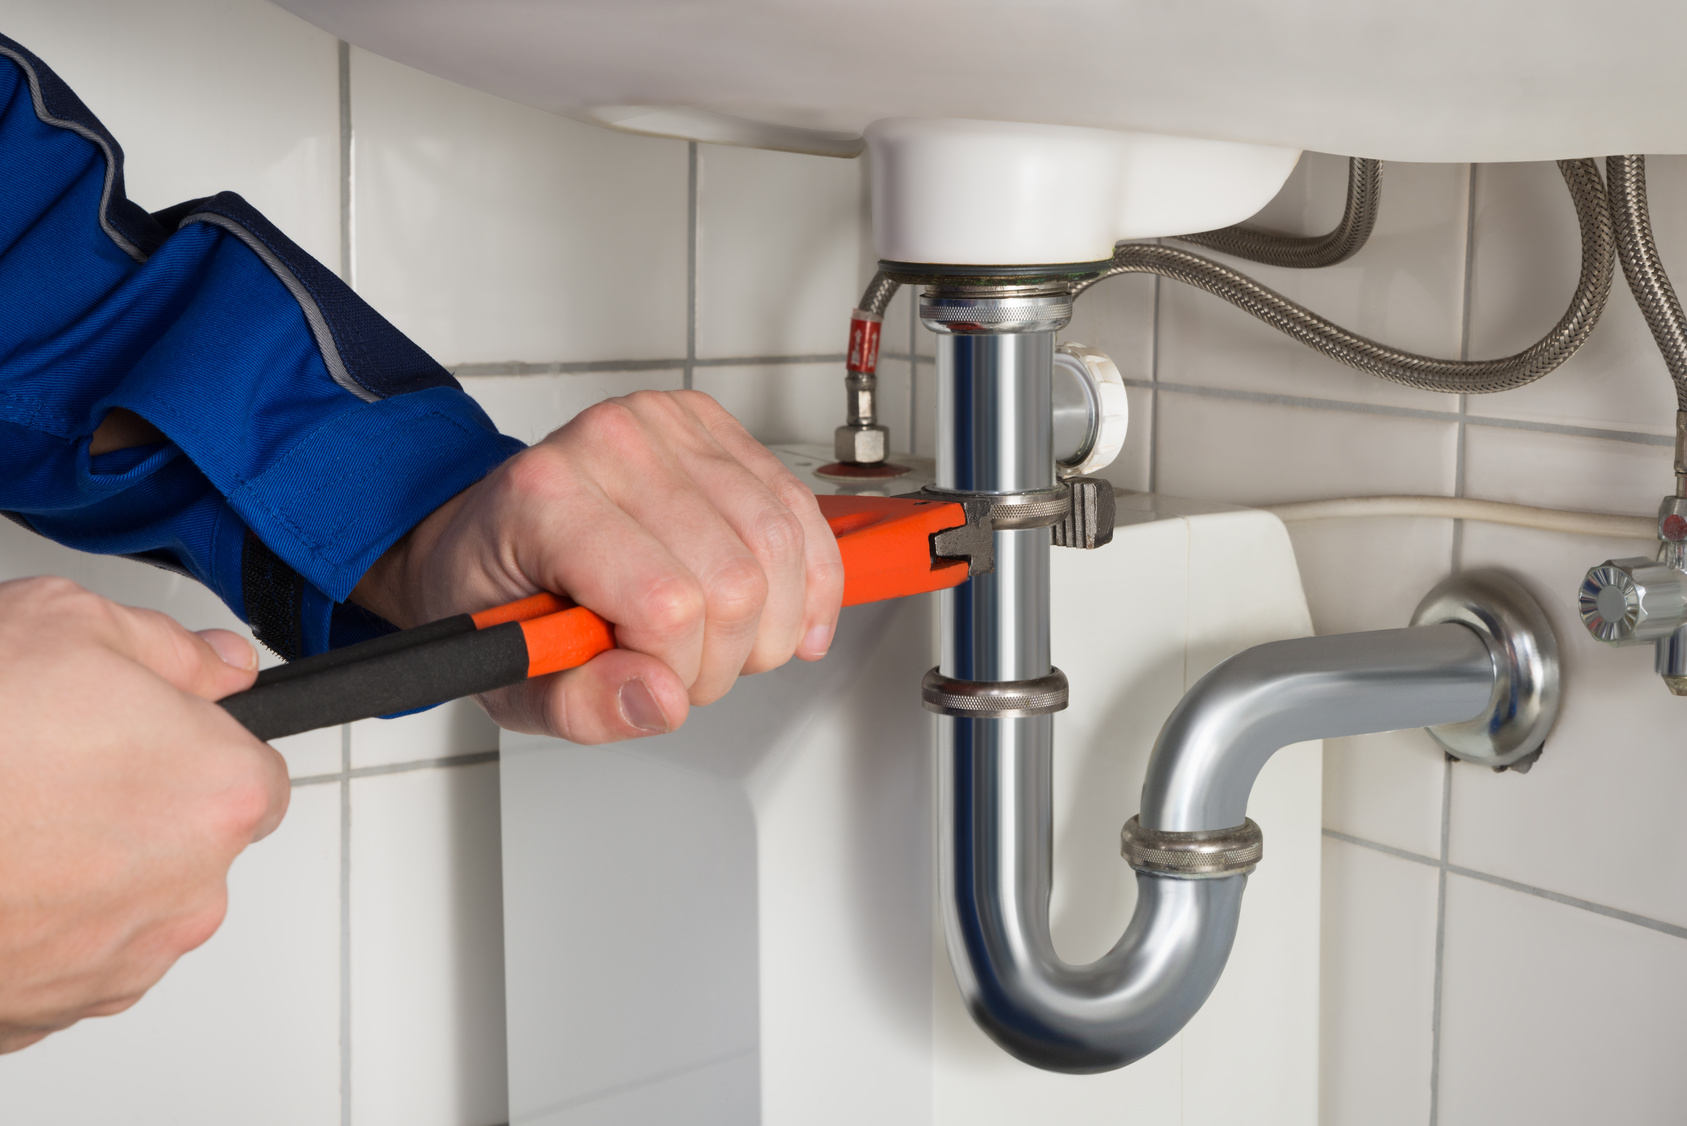 Male Plumber Repairing Sink In Bathroom